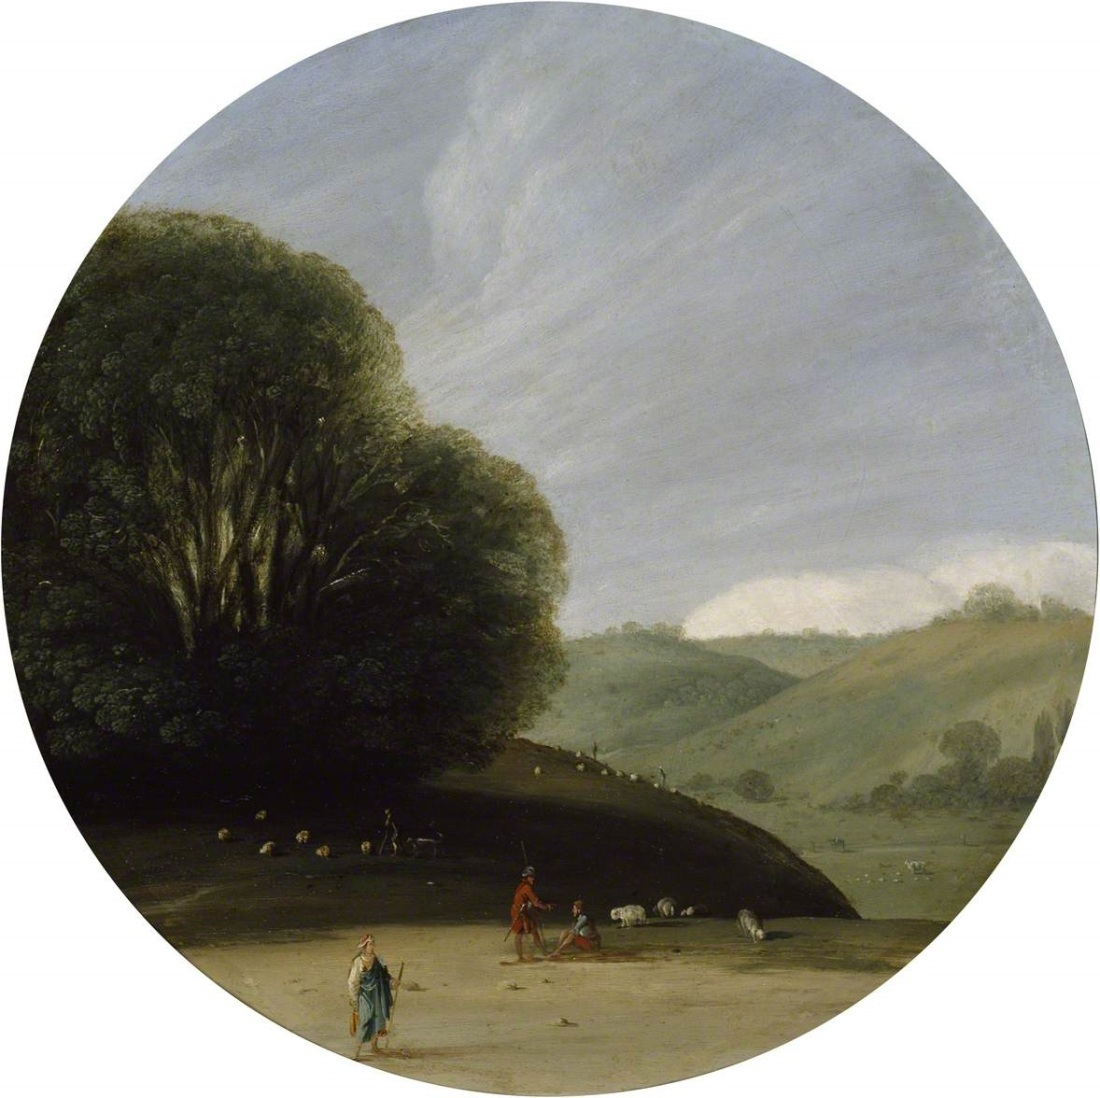 Wals, Goffredo, c.1605-c.1638; Landscape with pastoral Figures